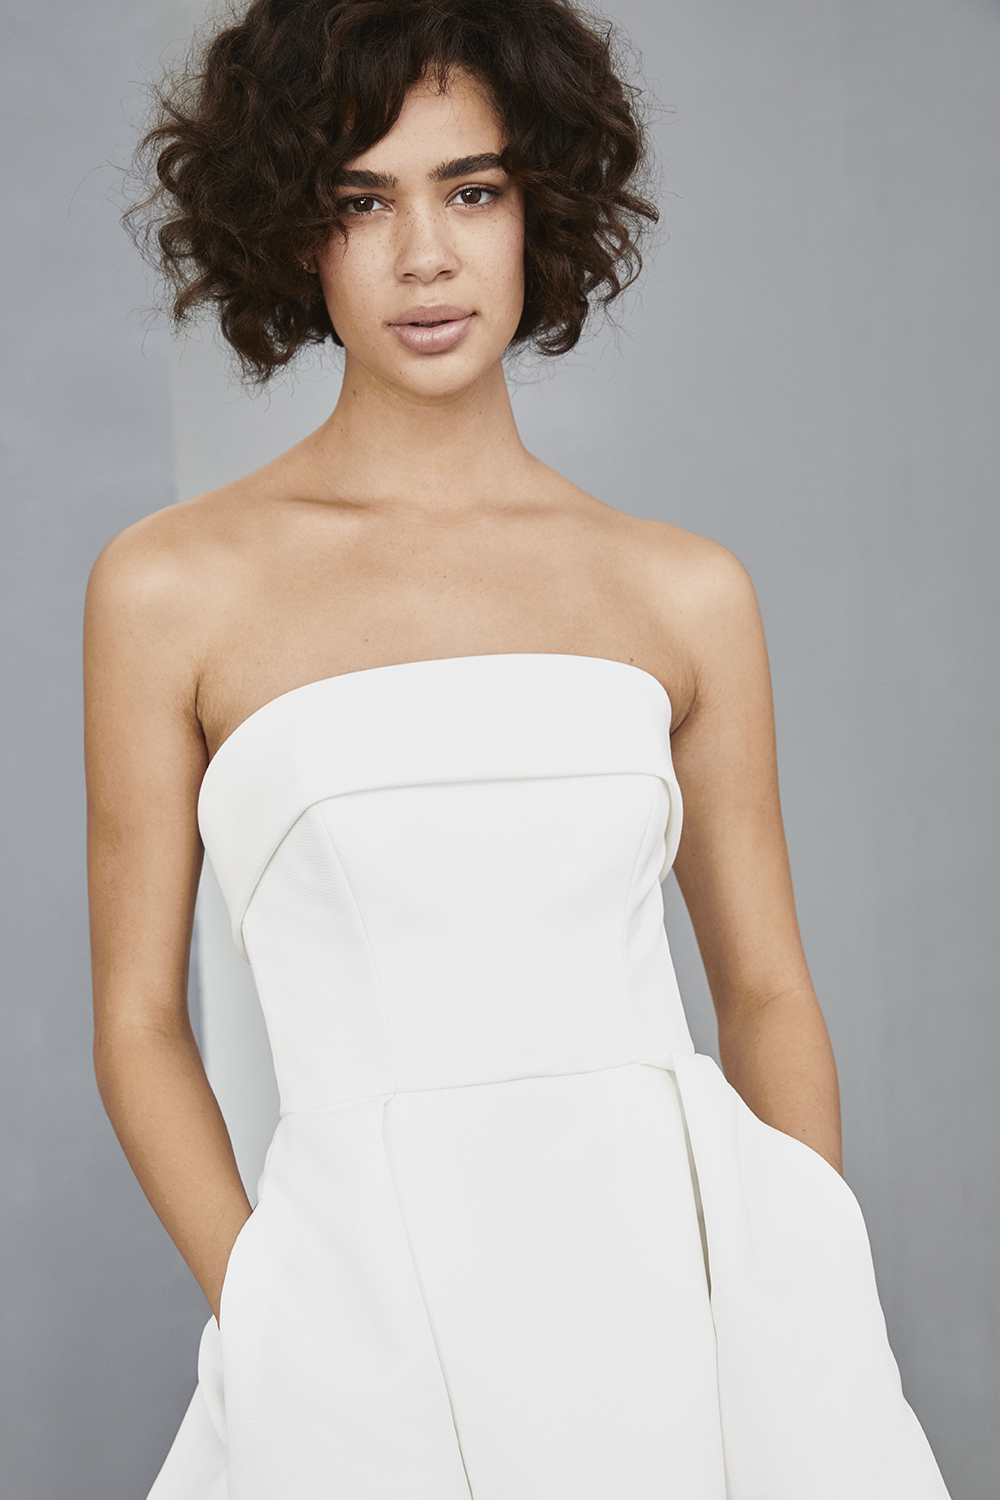 Rehearsal dinner dress by Amsale Little White Dresses with pockets